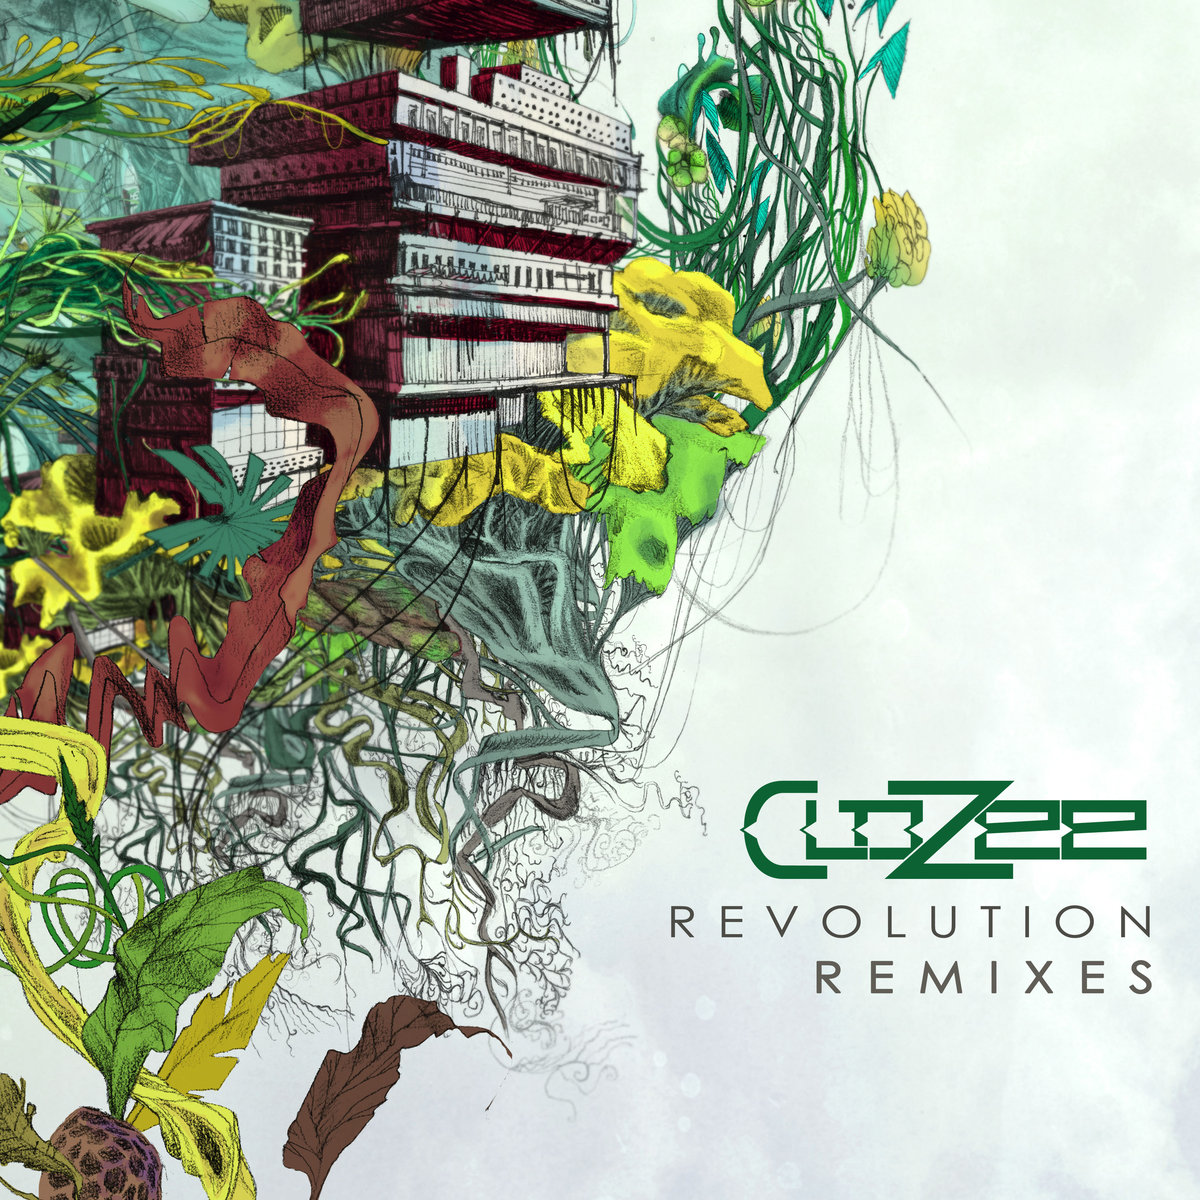 CloZee - Anticlimax (Spoken Bird Remix) @ 'Revolution Remixes' album (chill, downtempo)